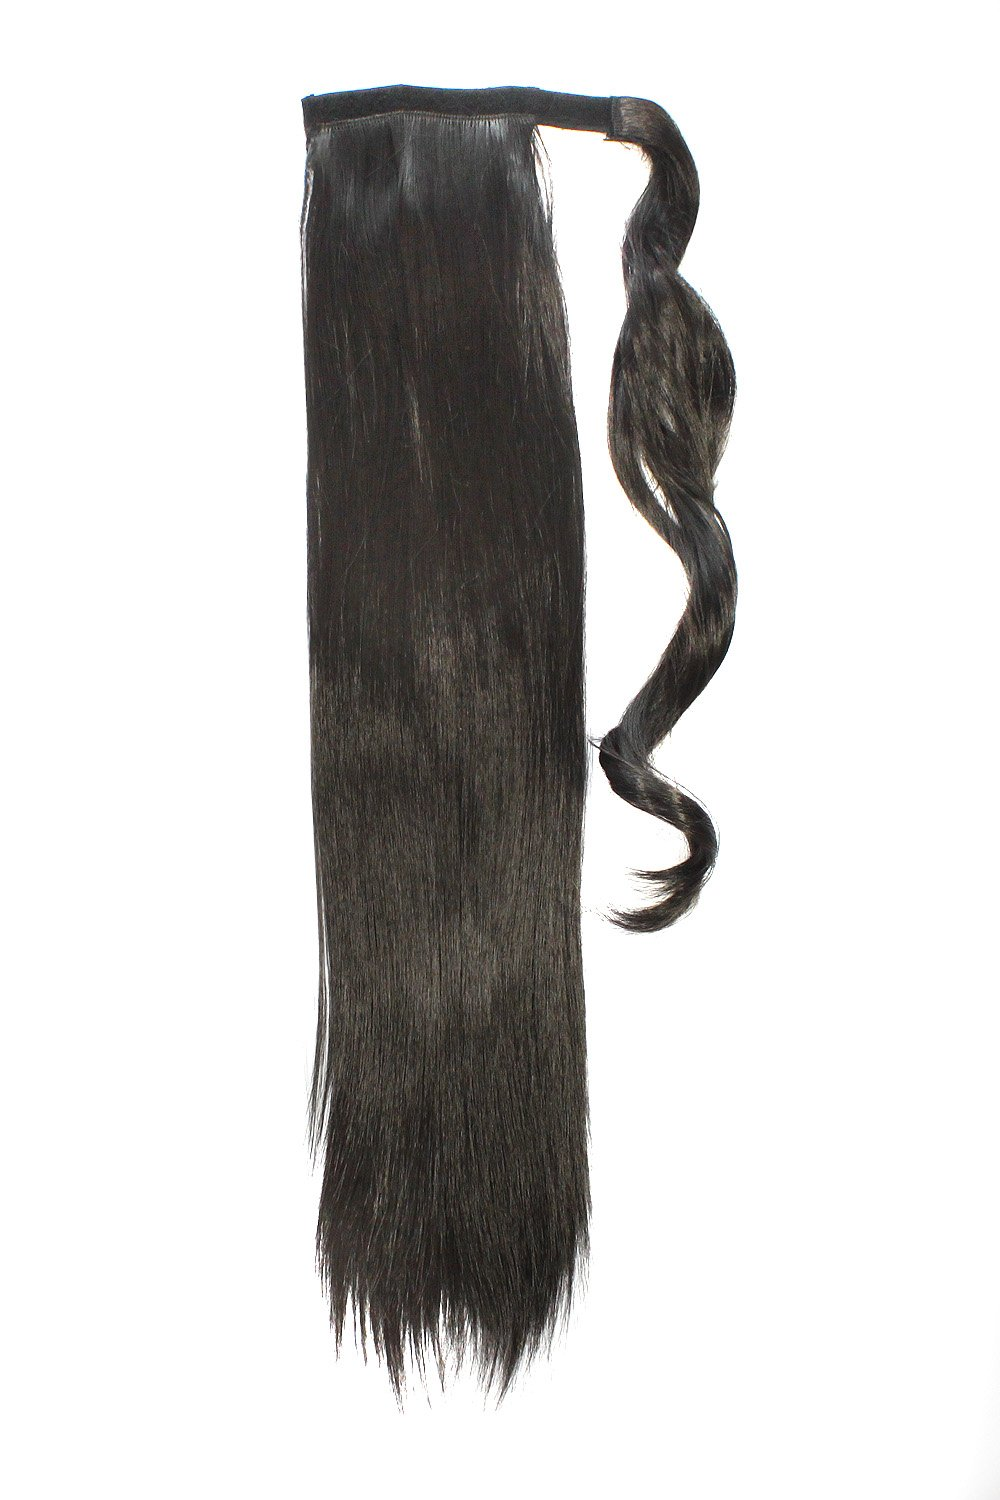 MapofBeauty Long Straight Hair Extensions Warp with Ponytail ( Jet Black)